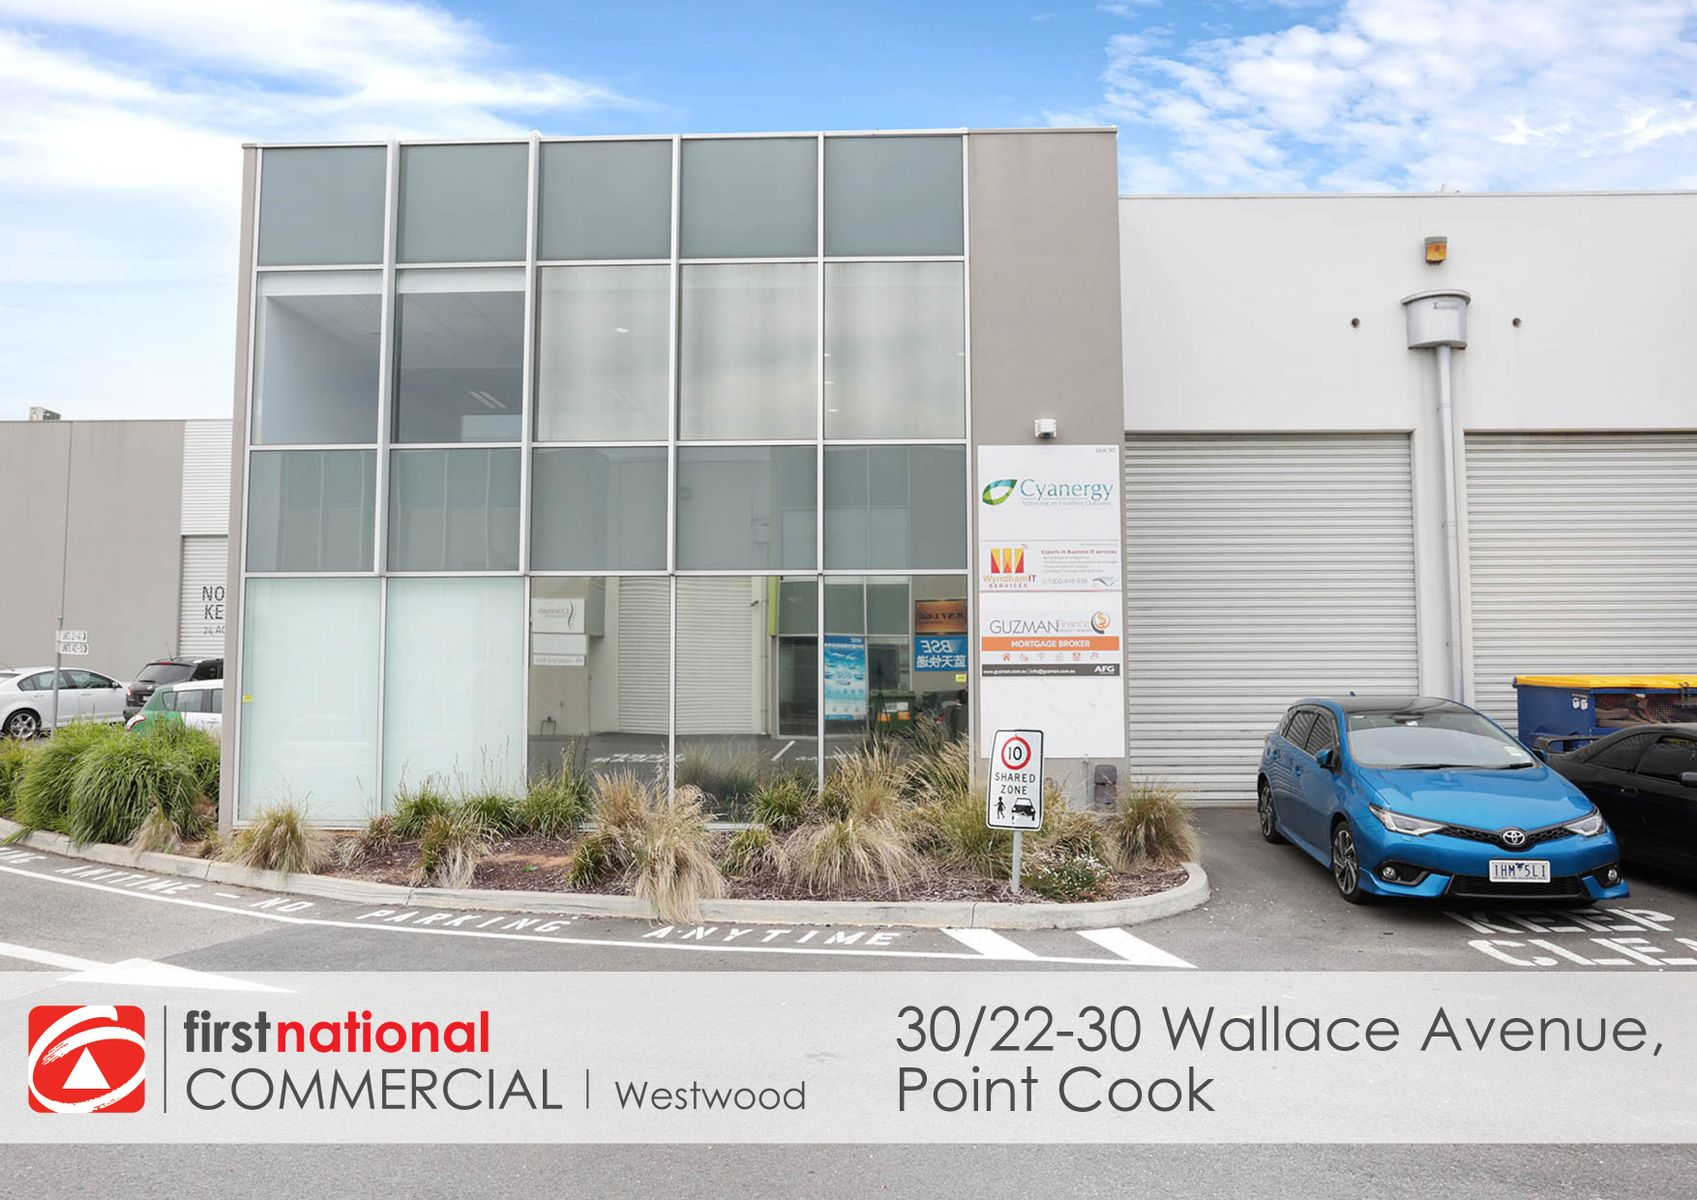 30/22-30 Wallace Avenue, Point Cook, VIC 3030